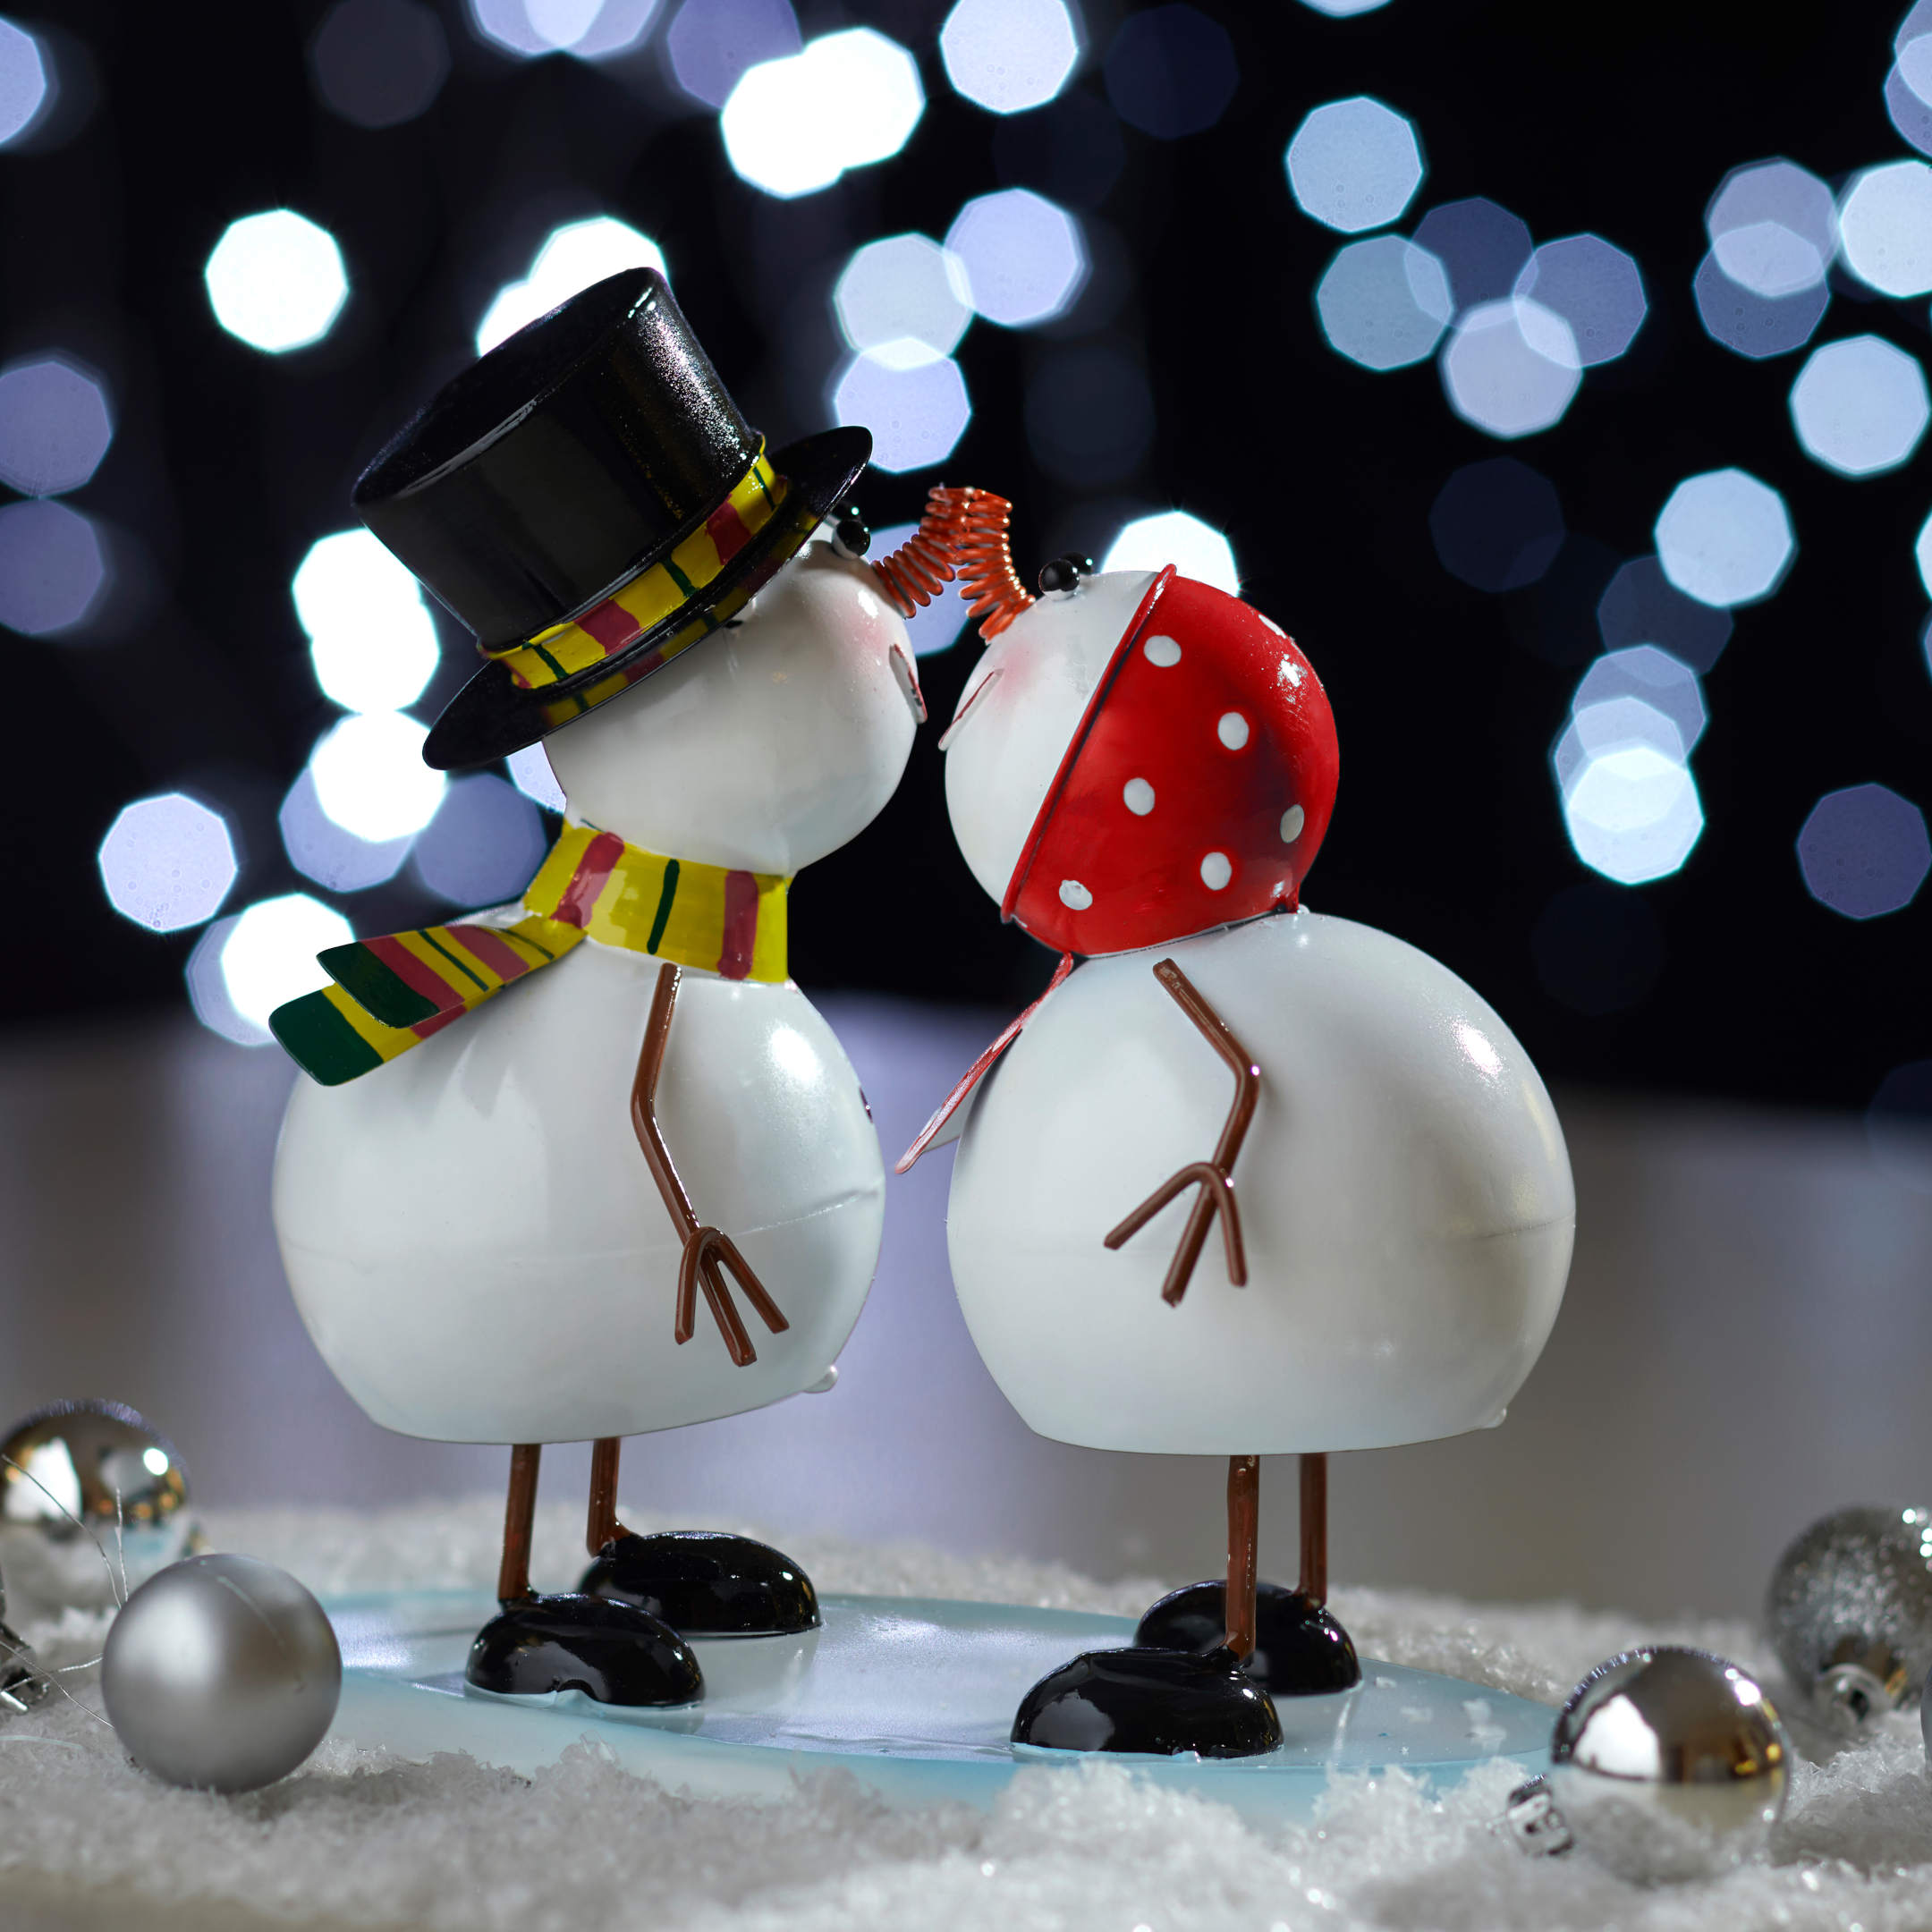 Mr. & Mrs. Frosty! # snehuliaci